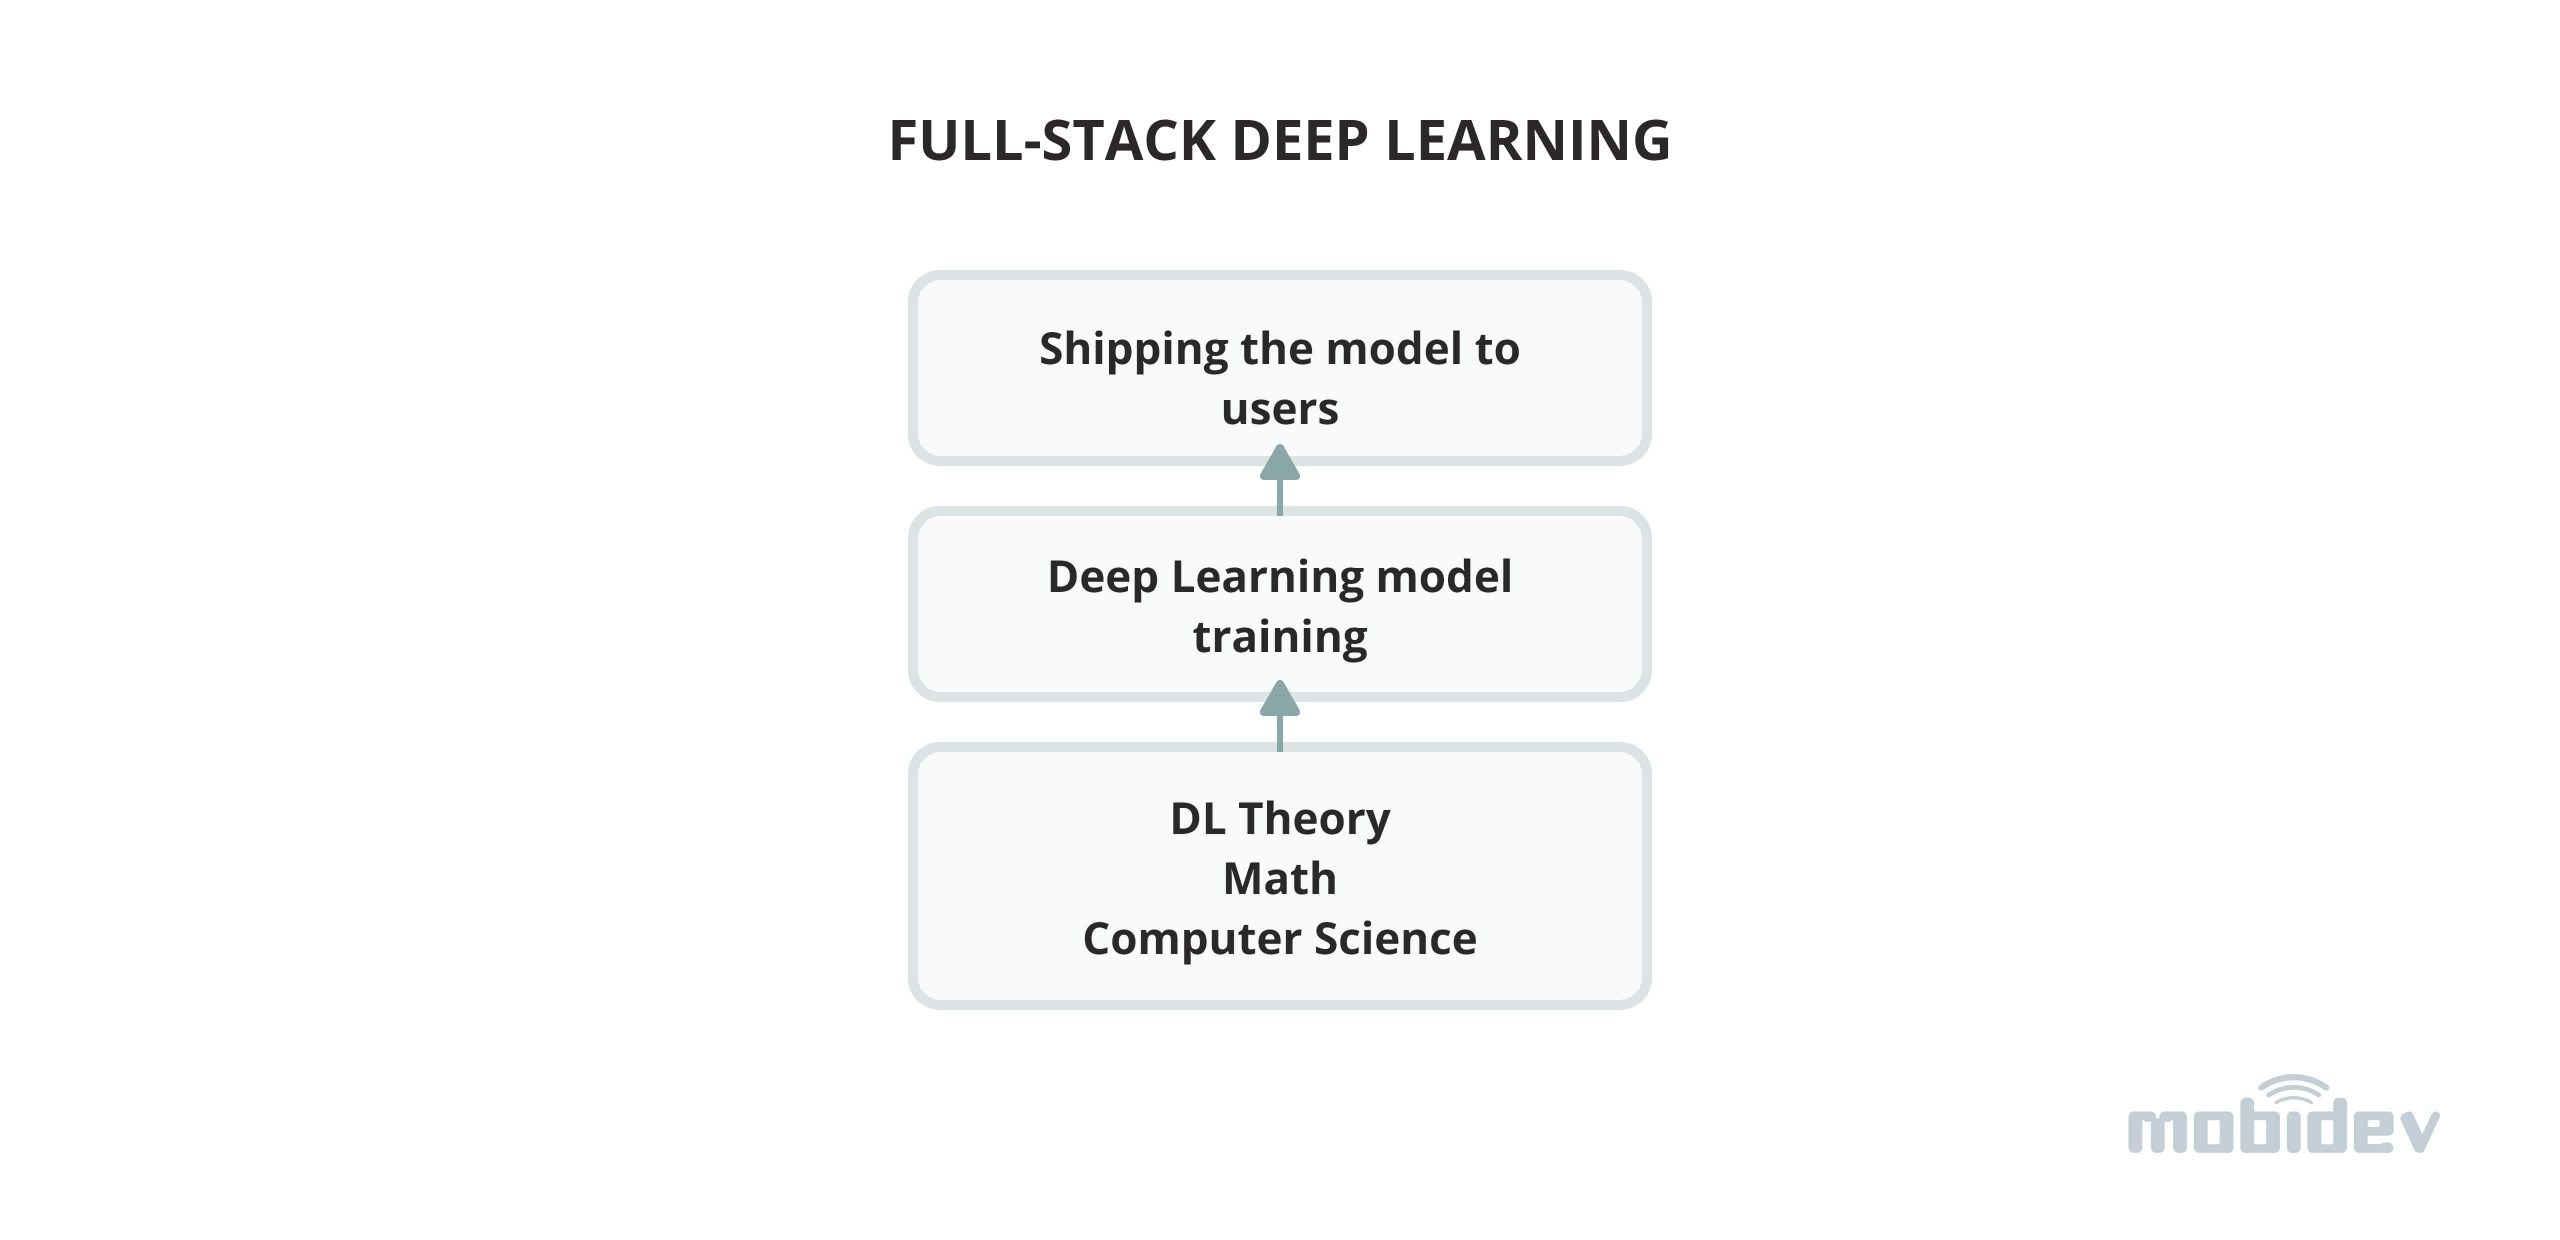 Full-stack Deep Learning